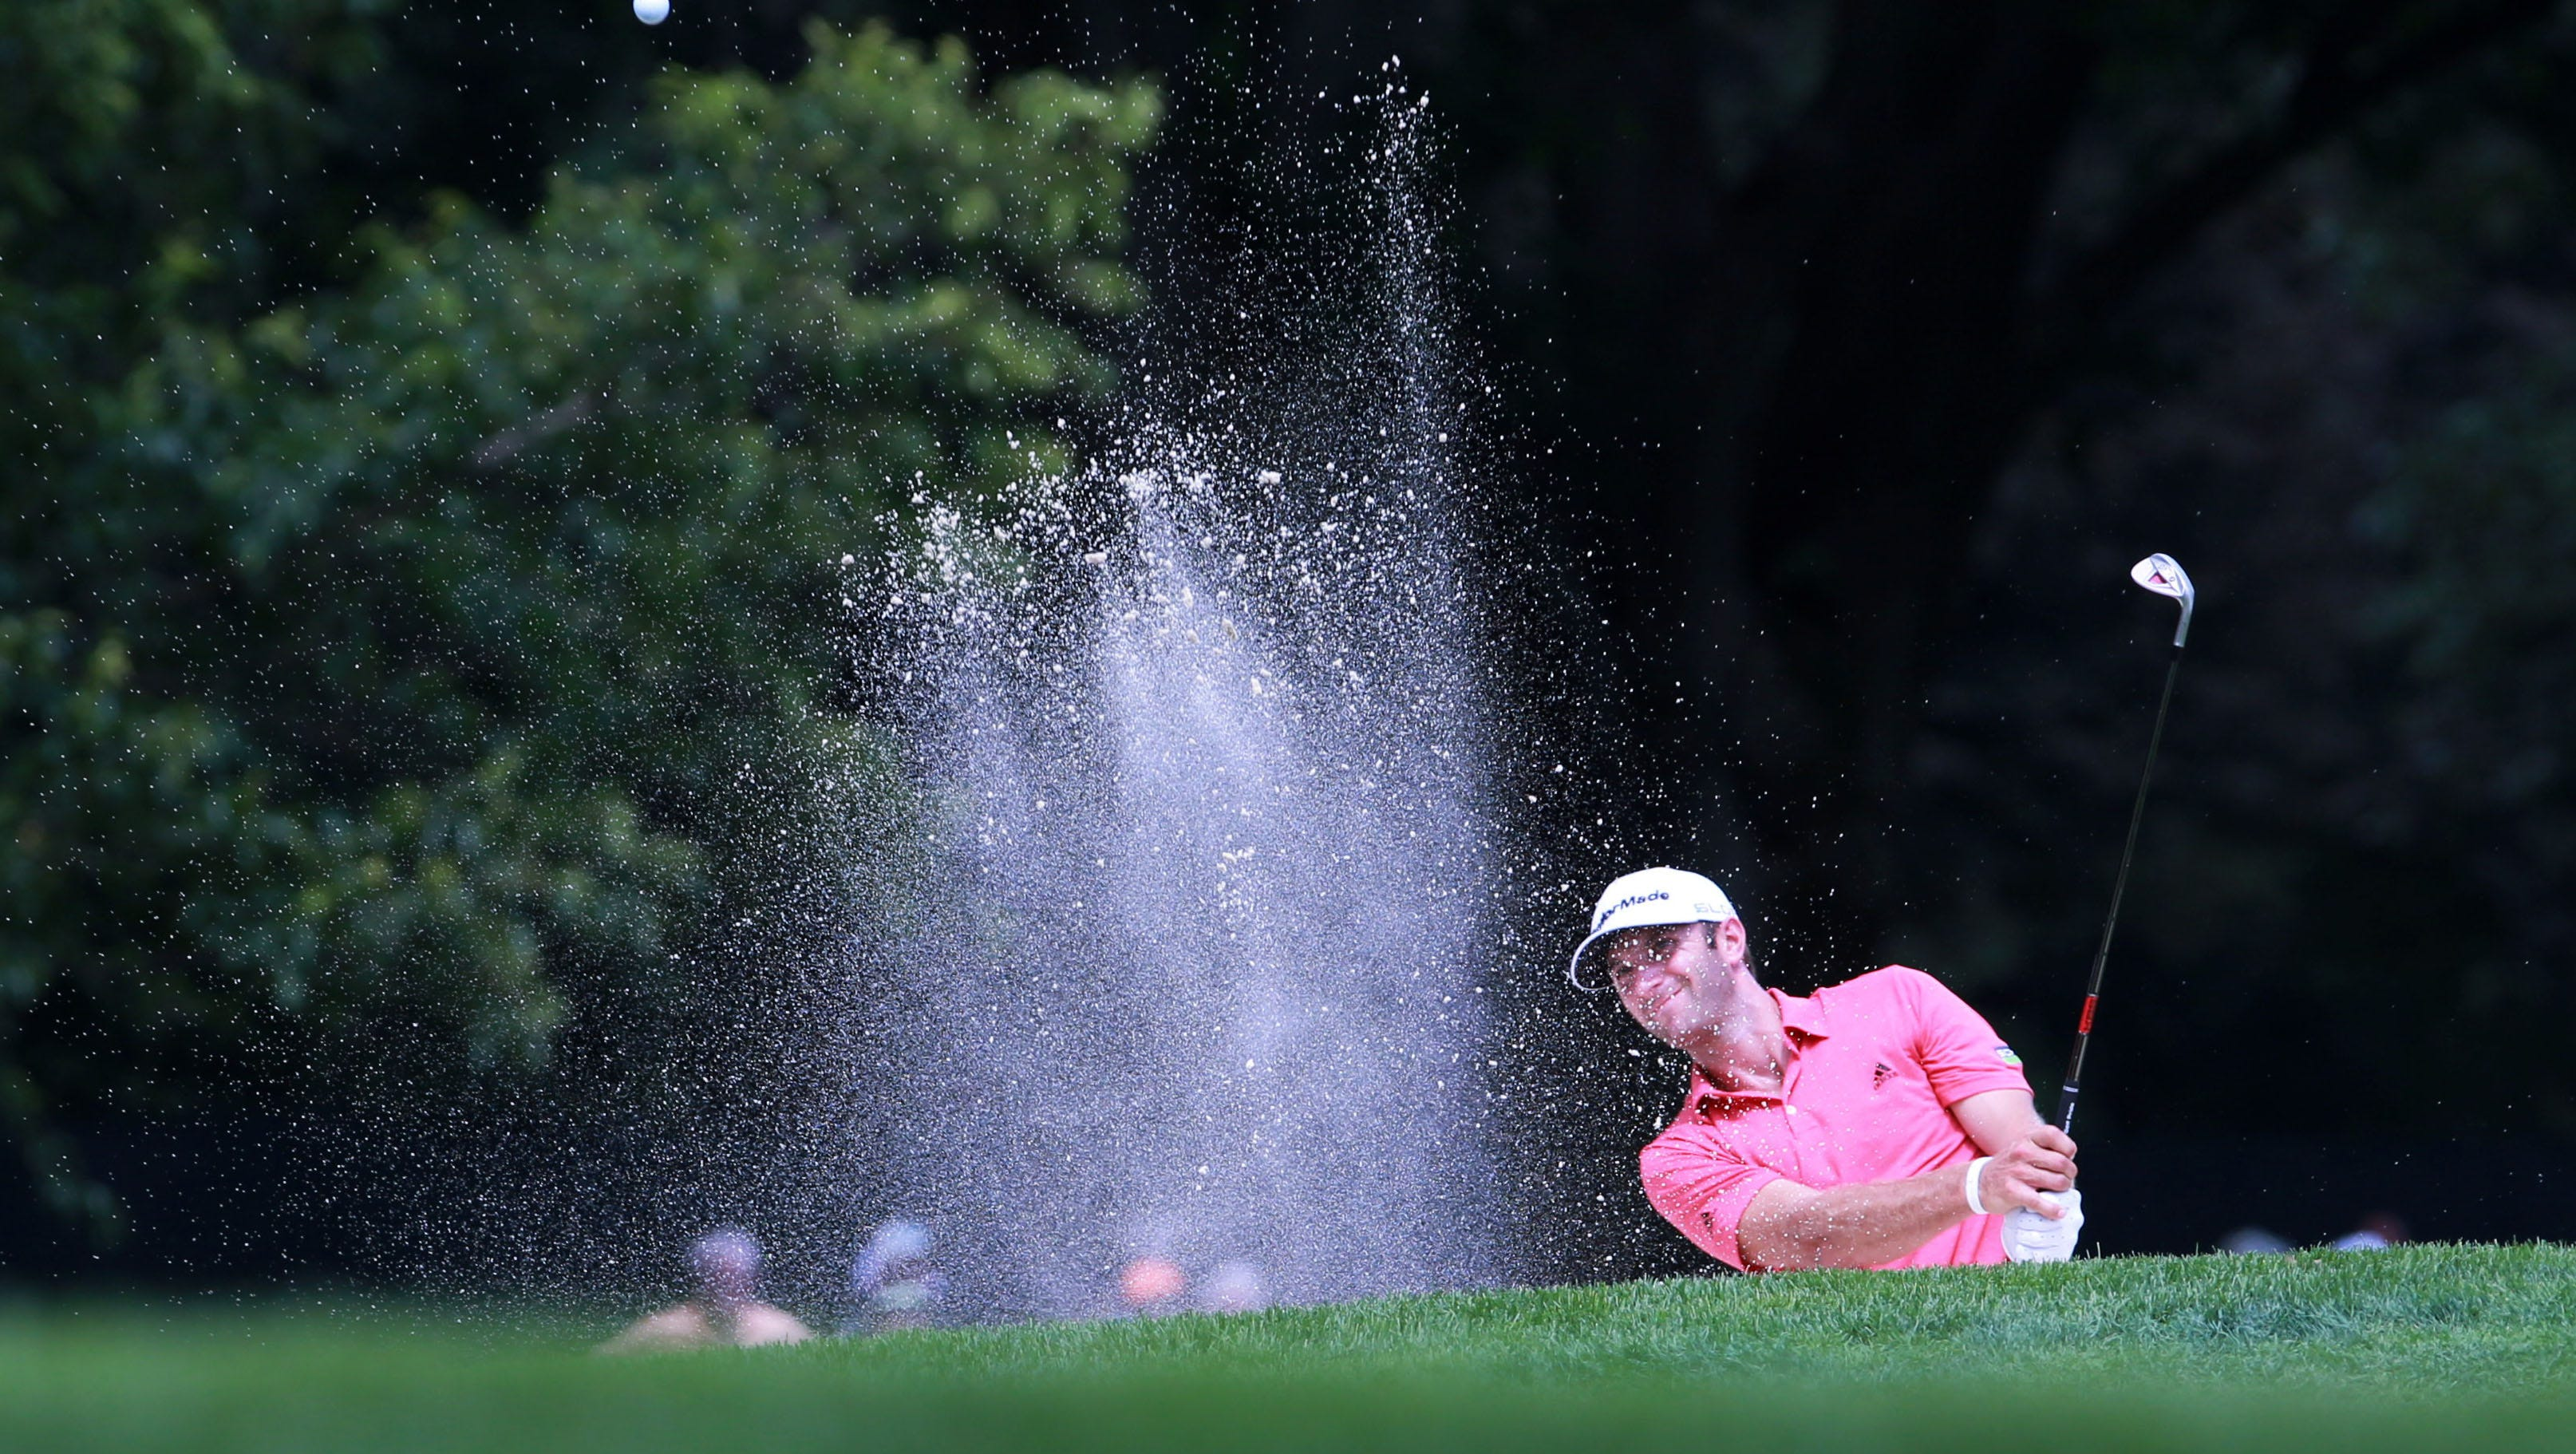 Dustin Johnson plays out of a bunker on the 8th hole.